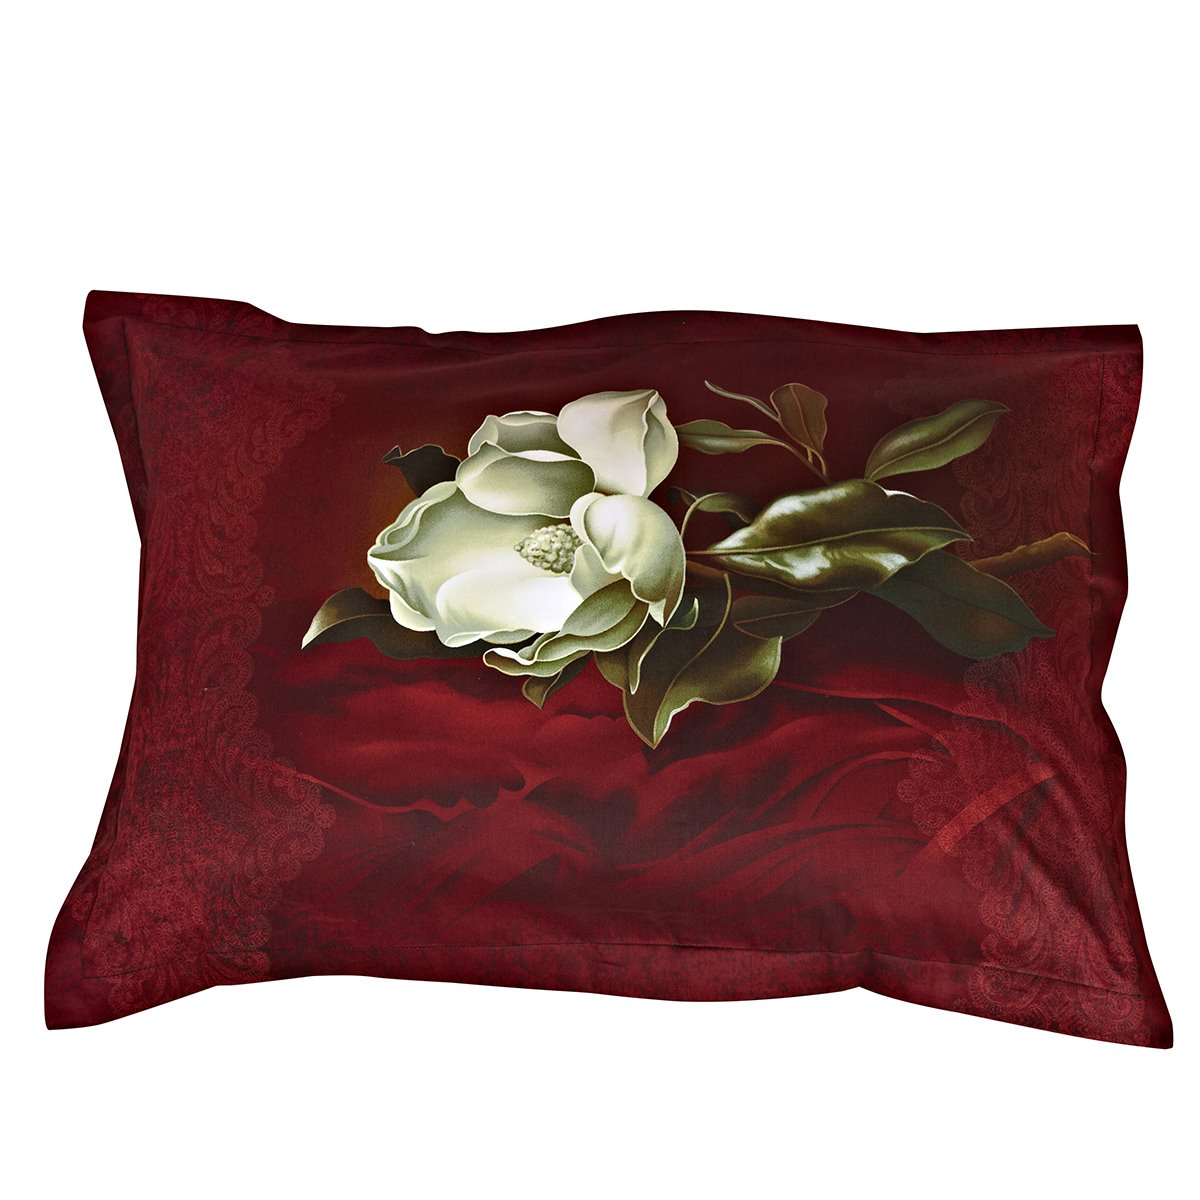 Retro Fashion White Flower Print One Pair Cotton Pillowcases